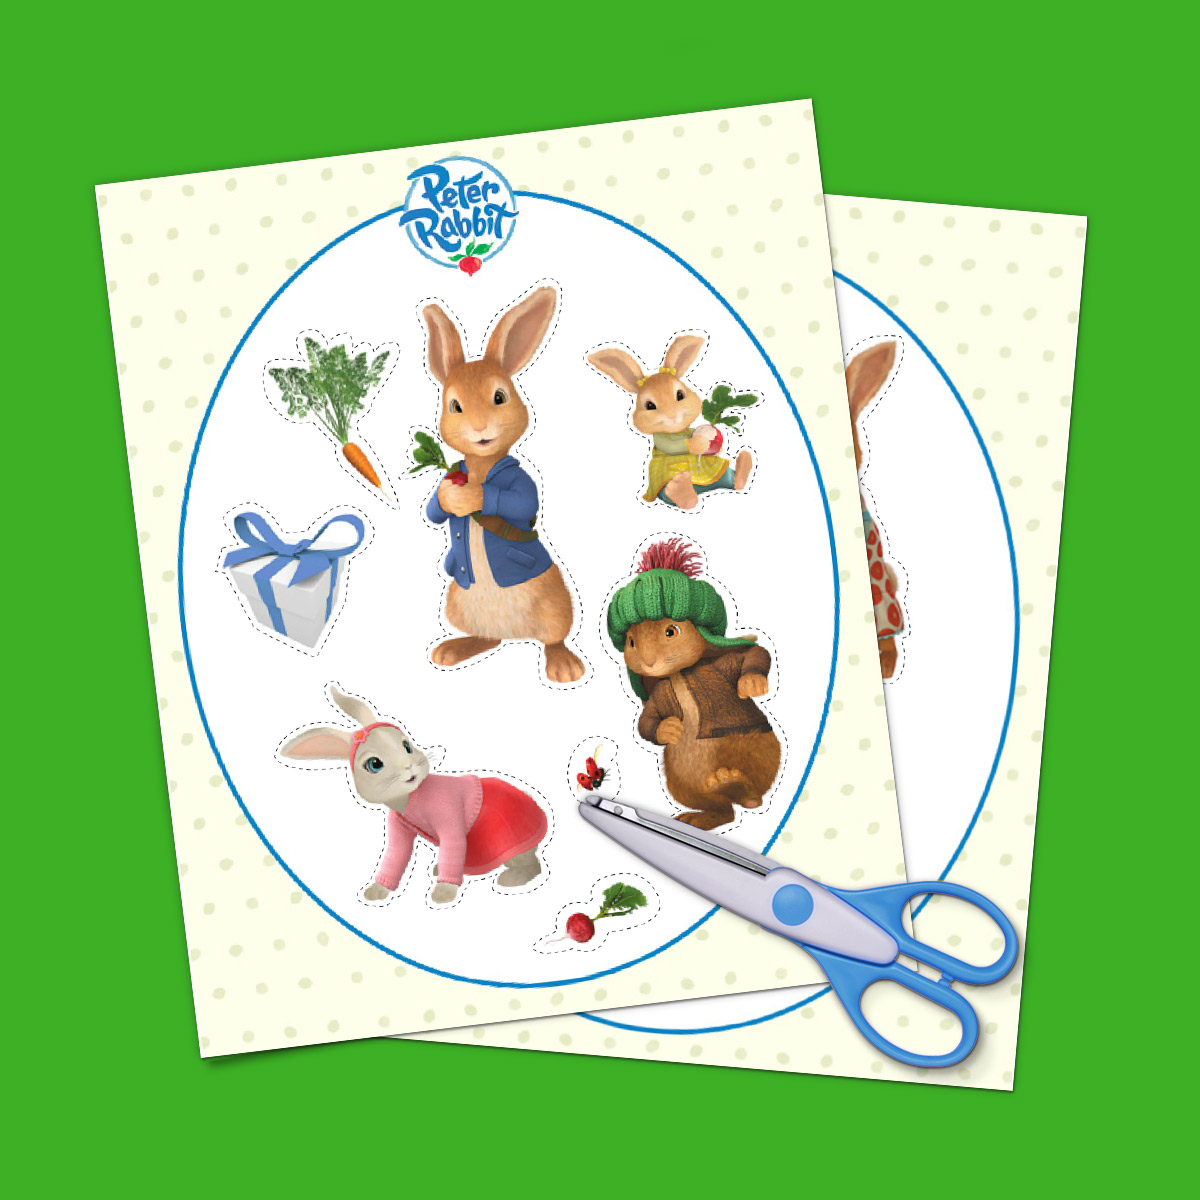 Peter Rabbit Goody Bag Stickers